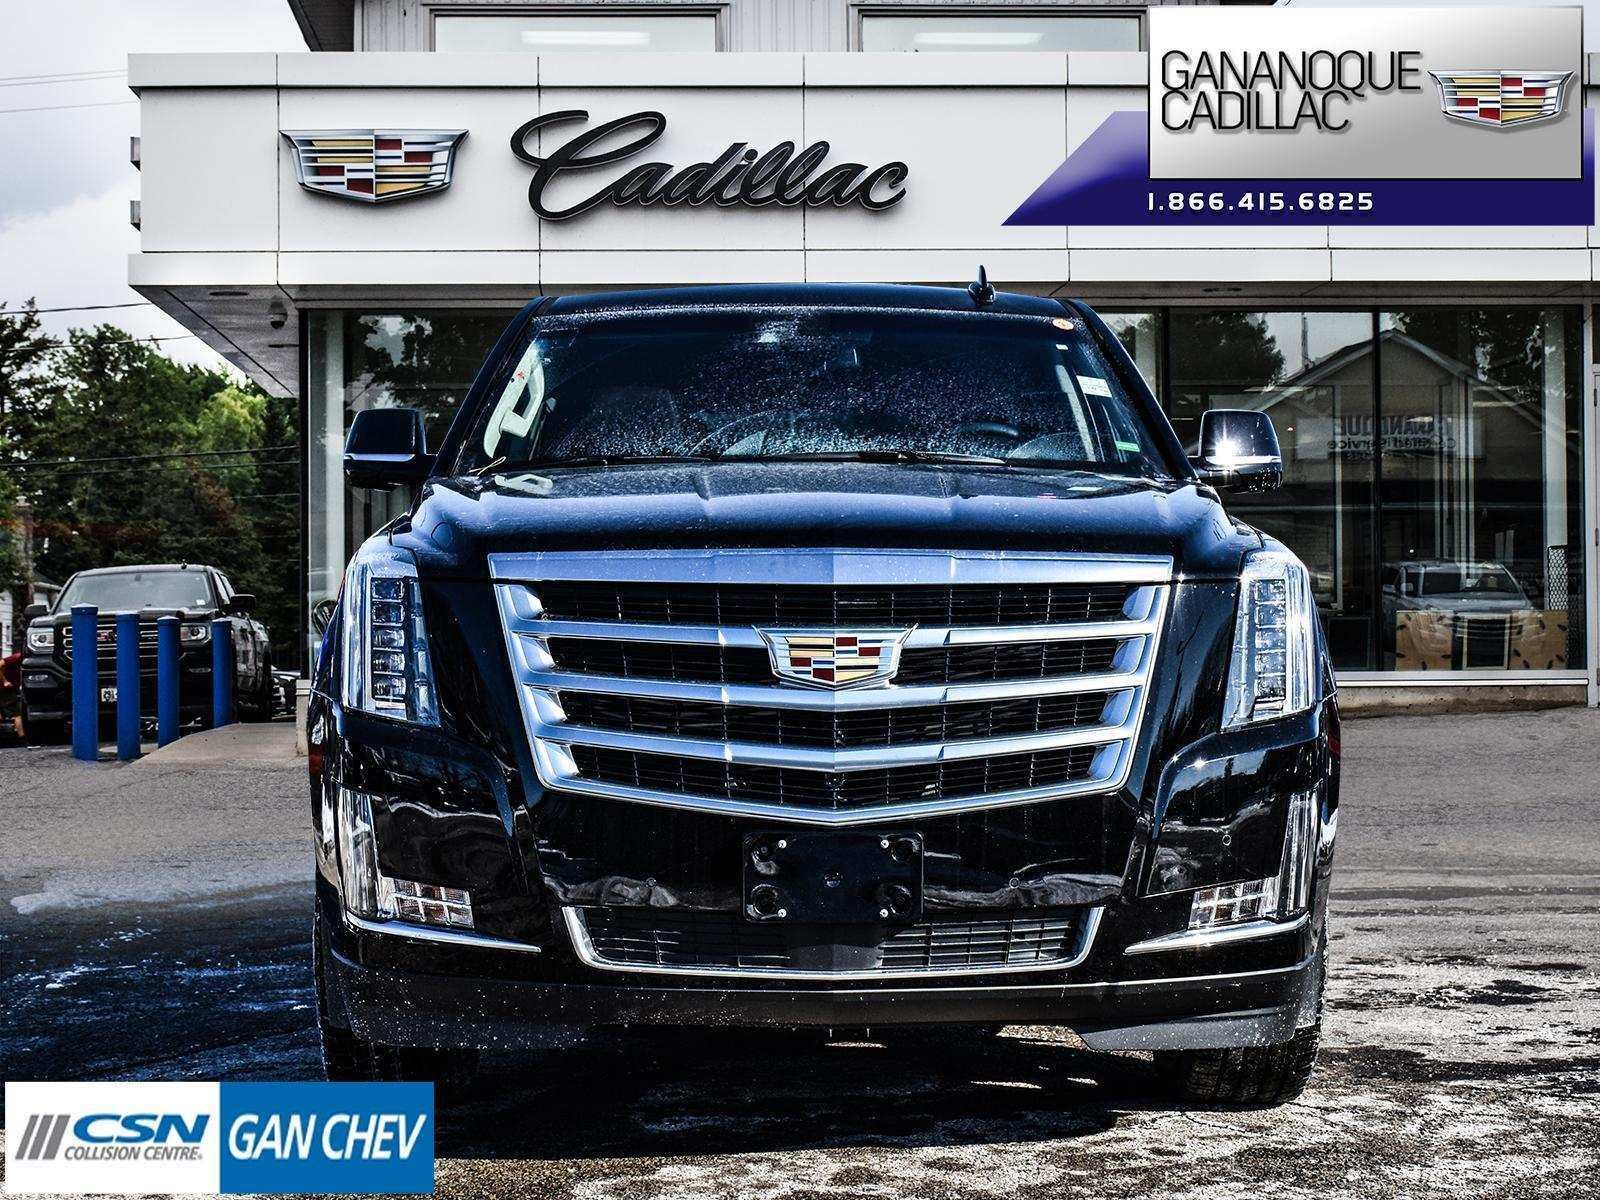 75 The New 2019 Cadillac Escalade Build New Review Pictures for New 2019 Cadillac Escalade Build New Review